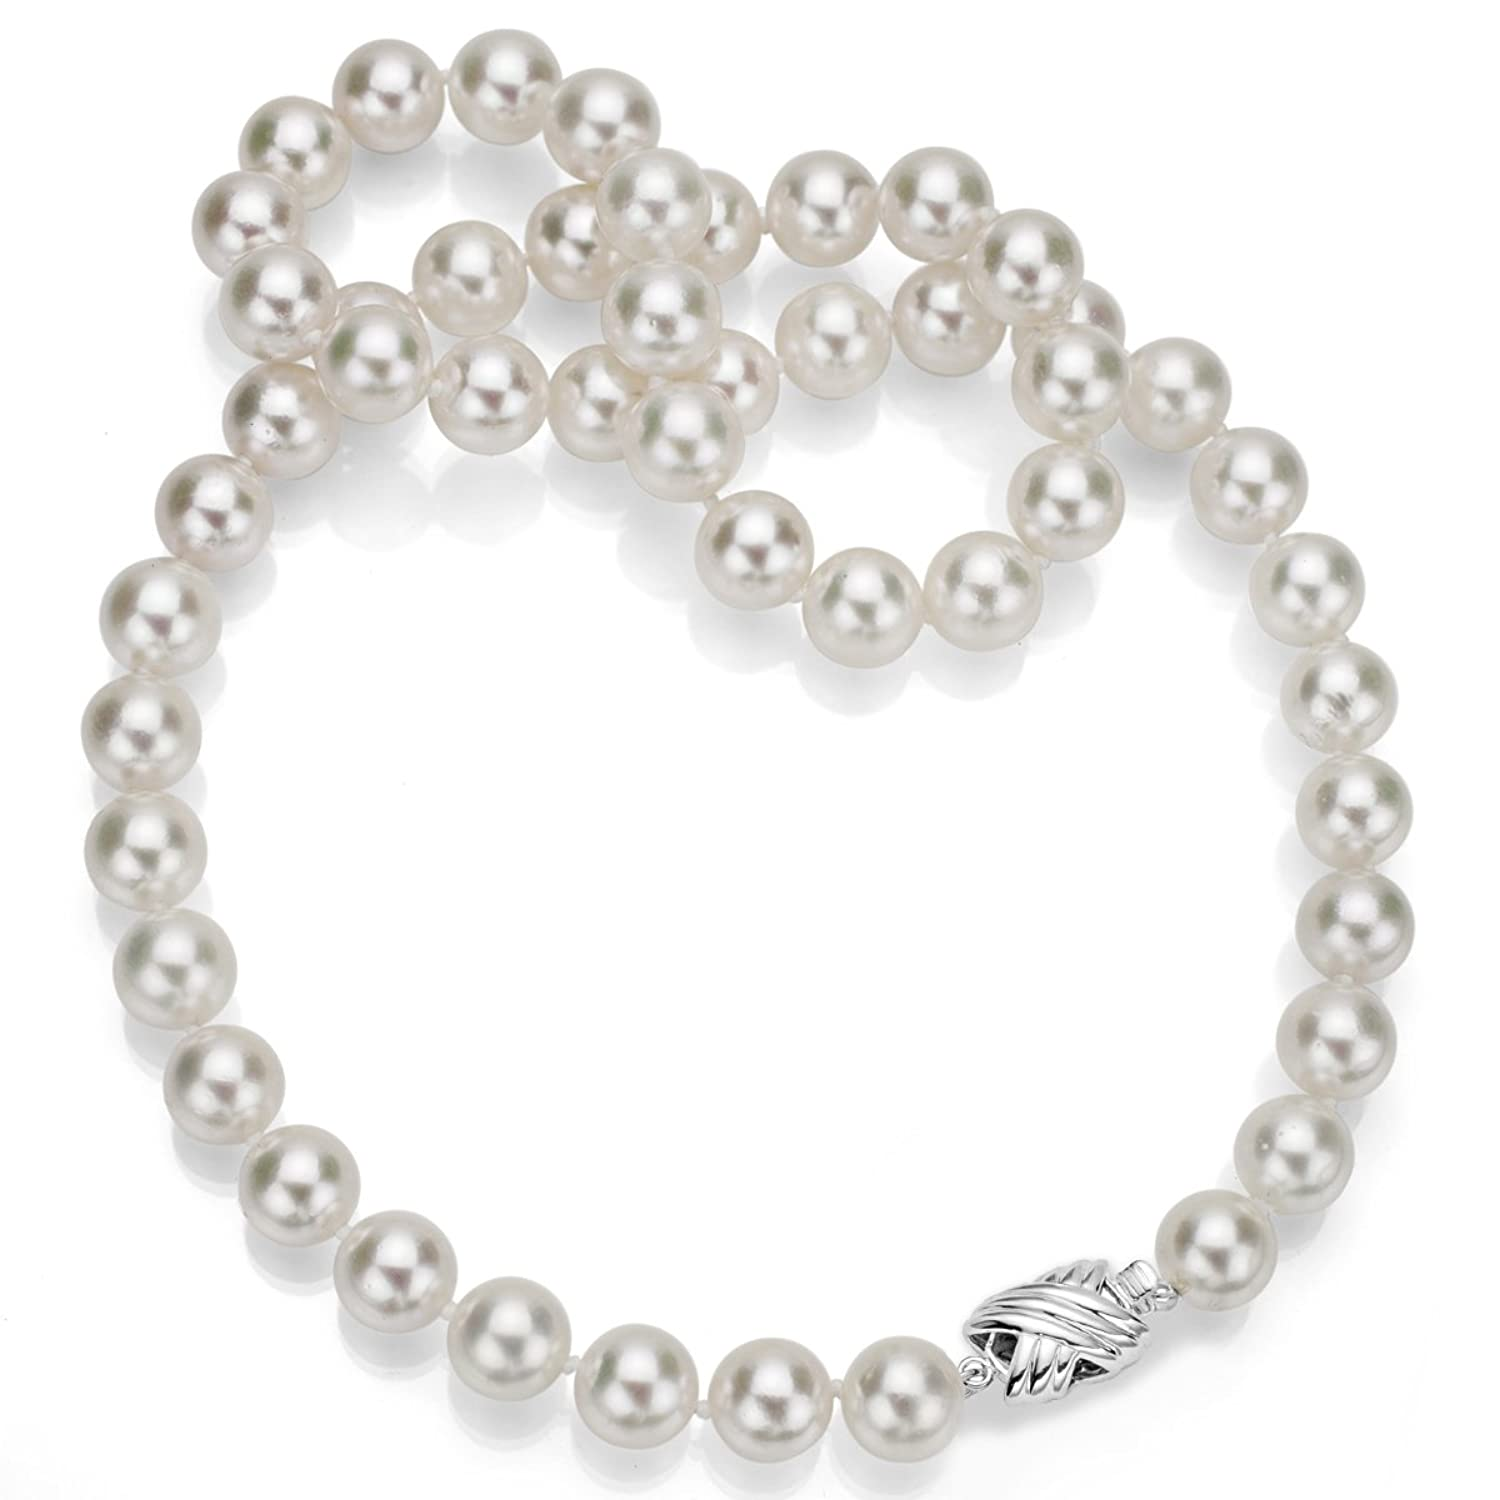 Amazon: 14k White Gold 859mm Aaa White Japanese Akoya Cultured Pearl  Doublesided Clasp Necklace, 18